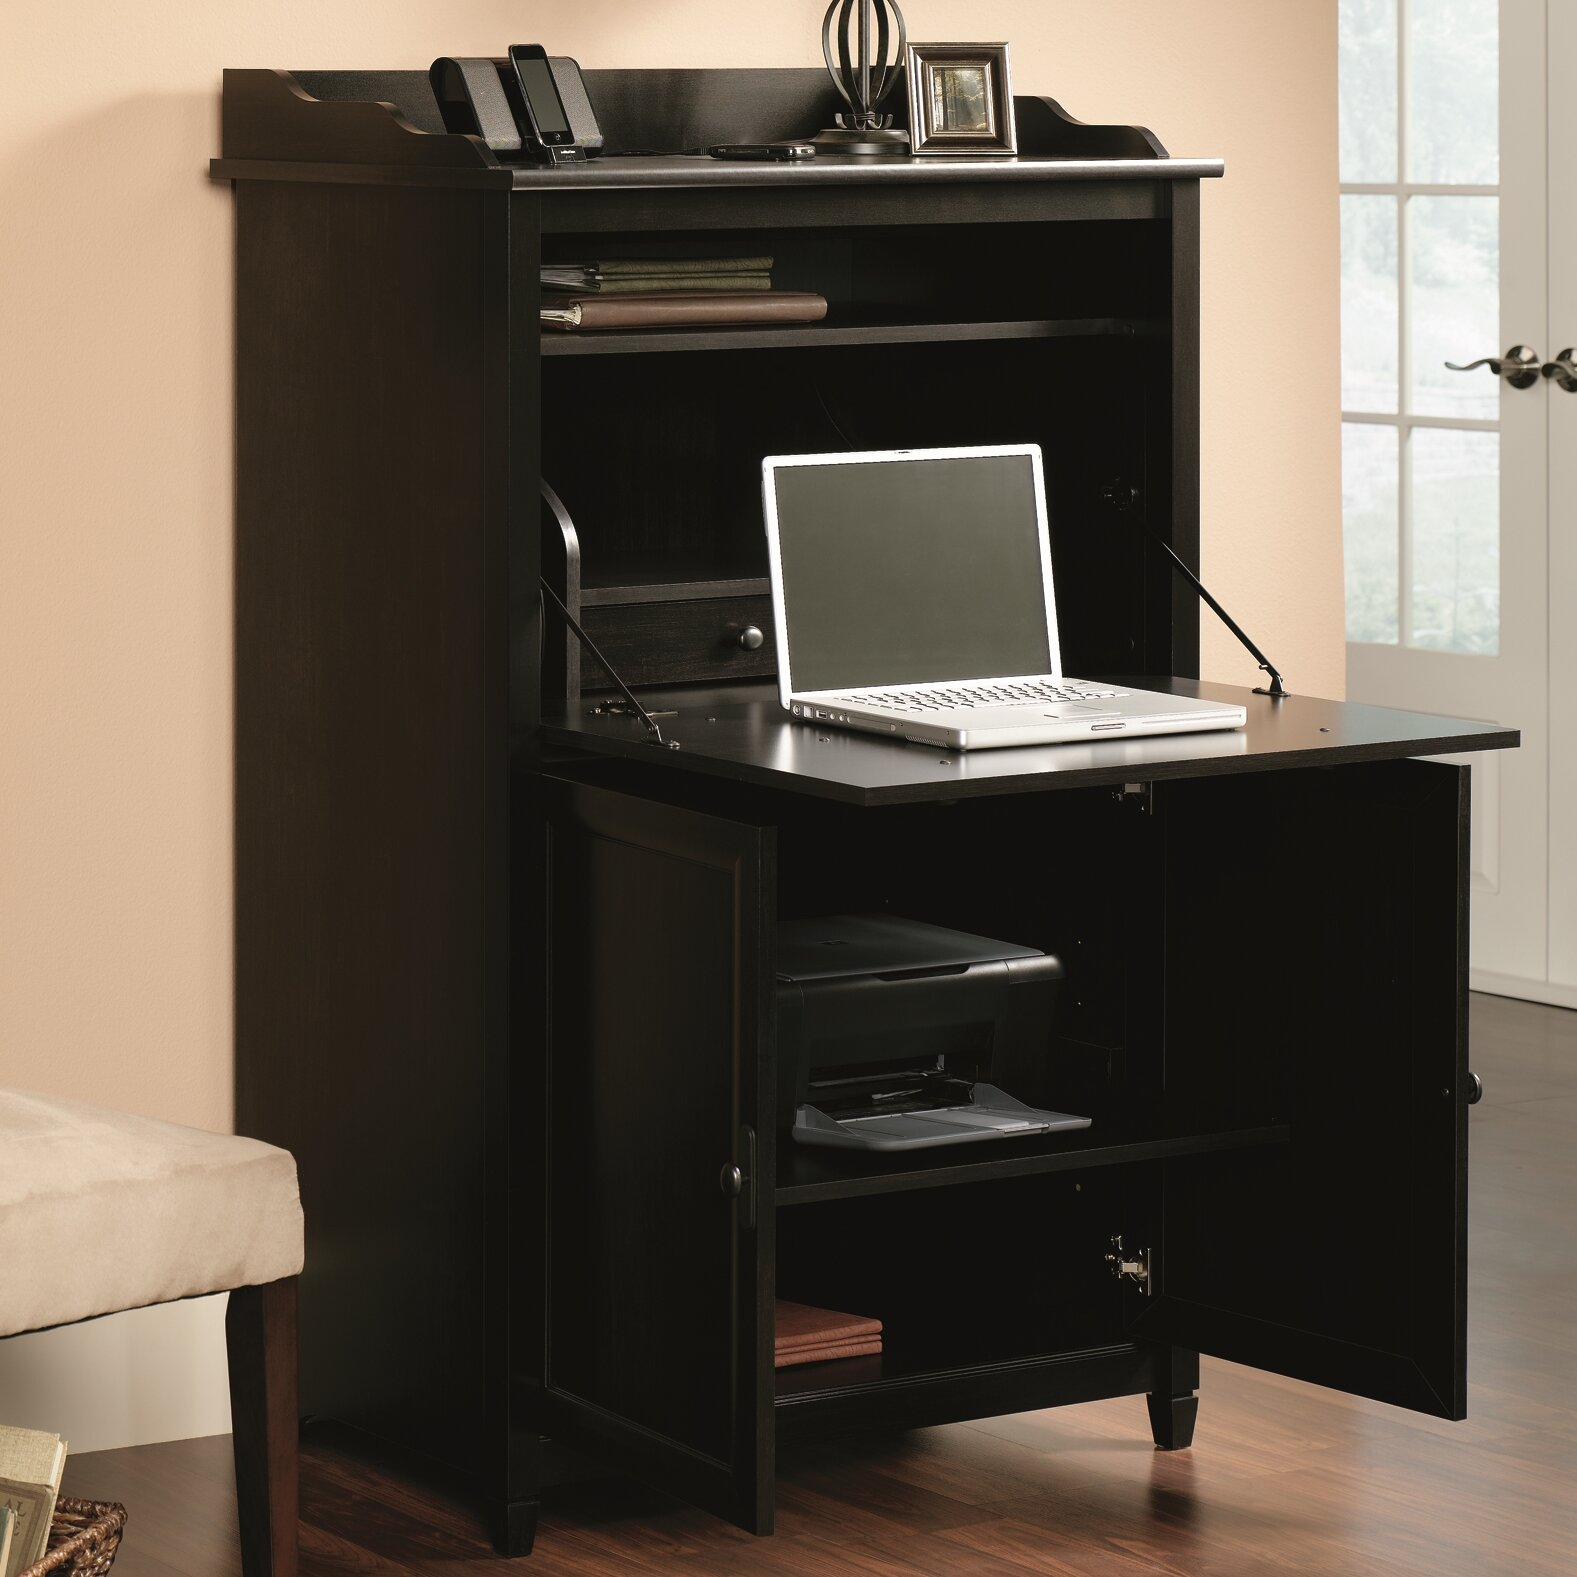 Desk Cabinet: Sauder Edge Water Secretary Desk & Reviews